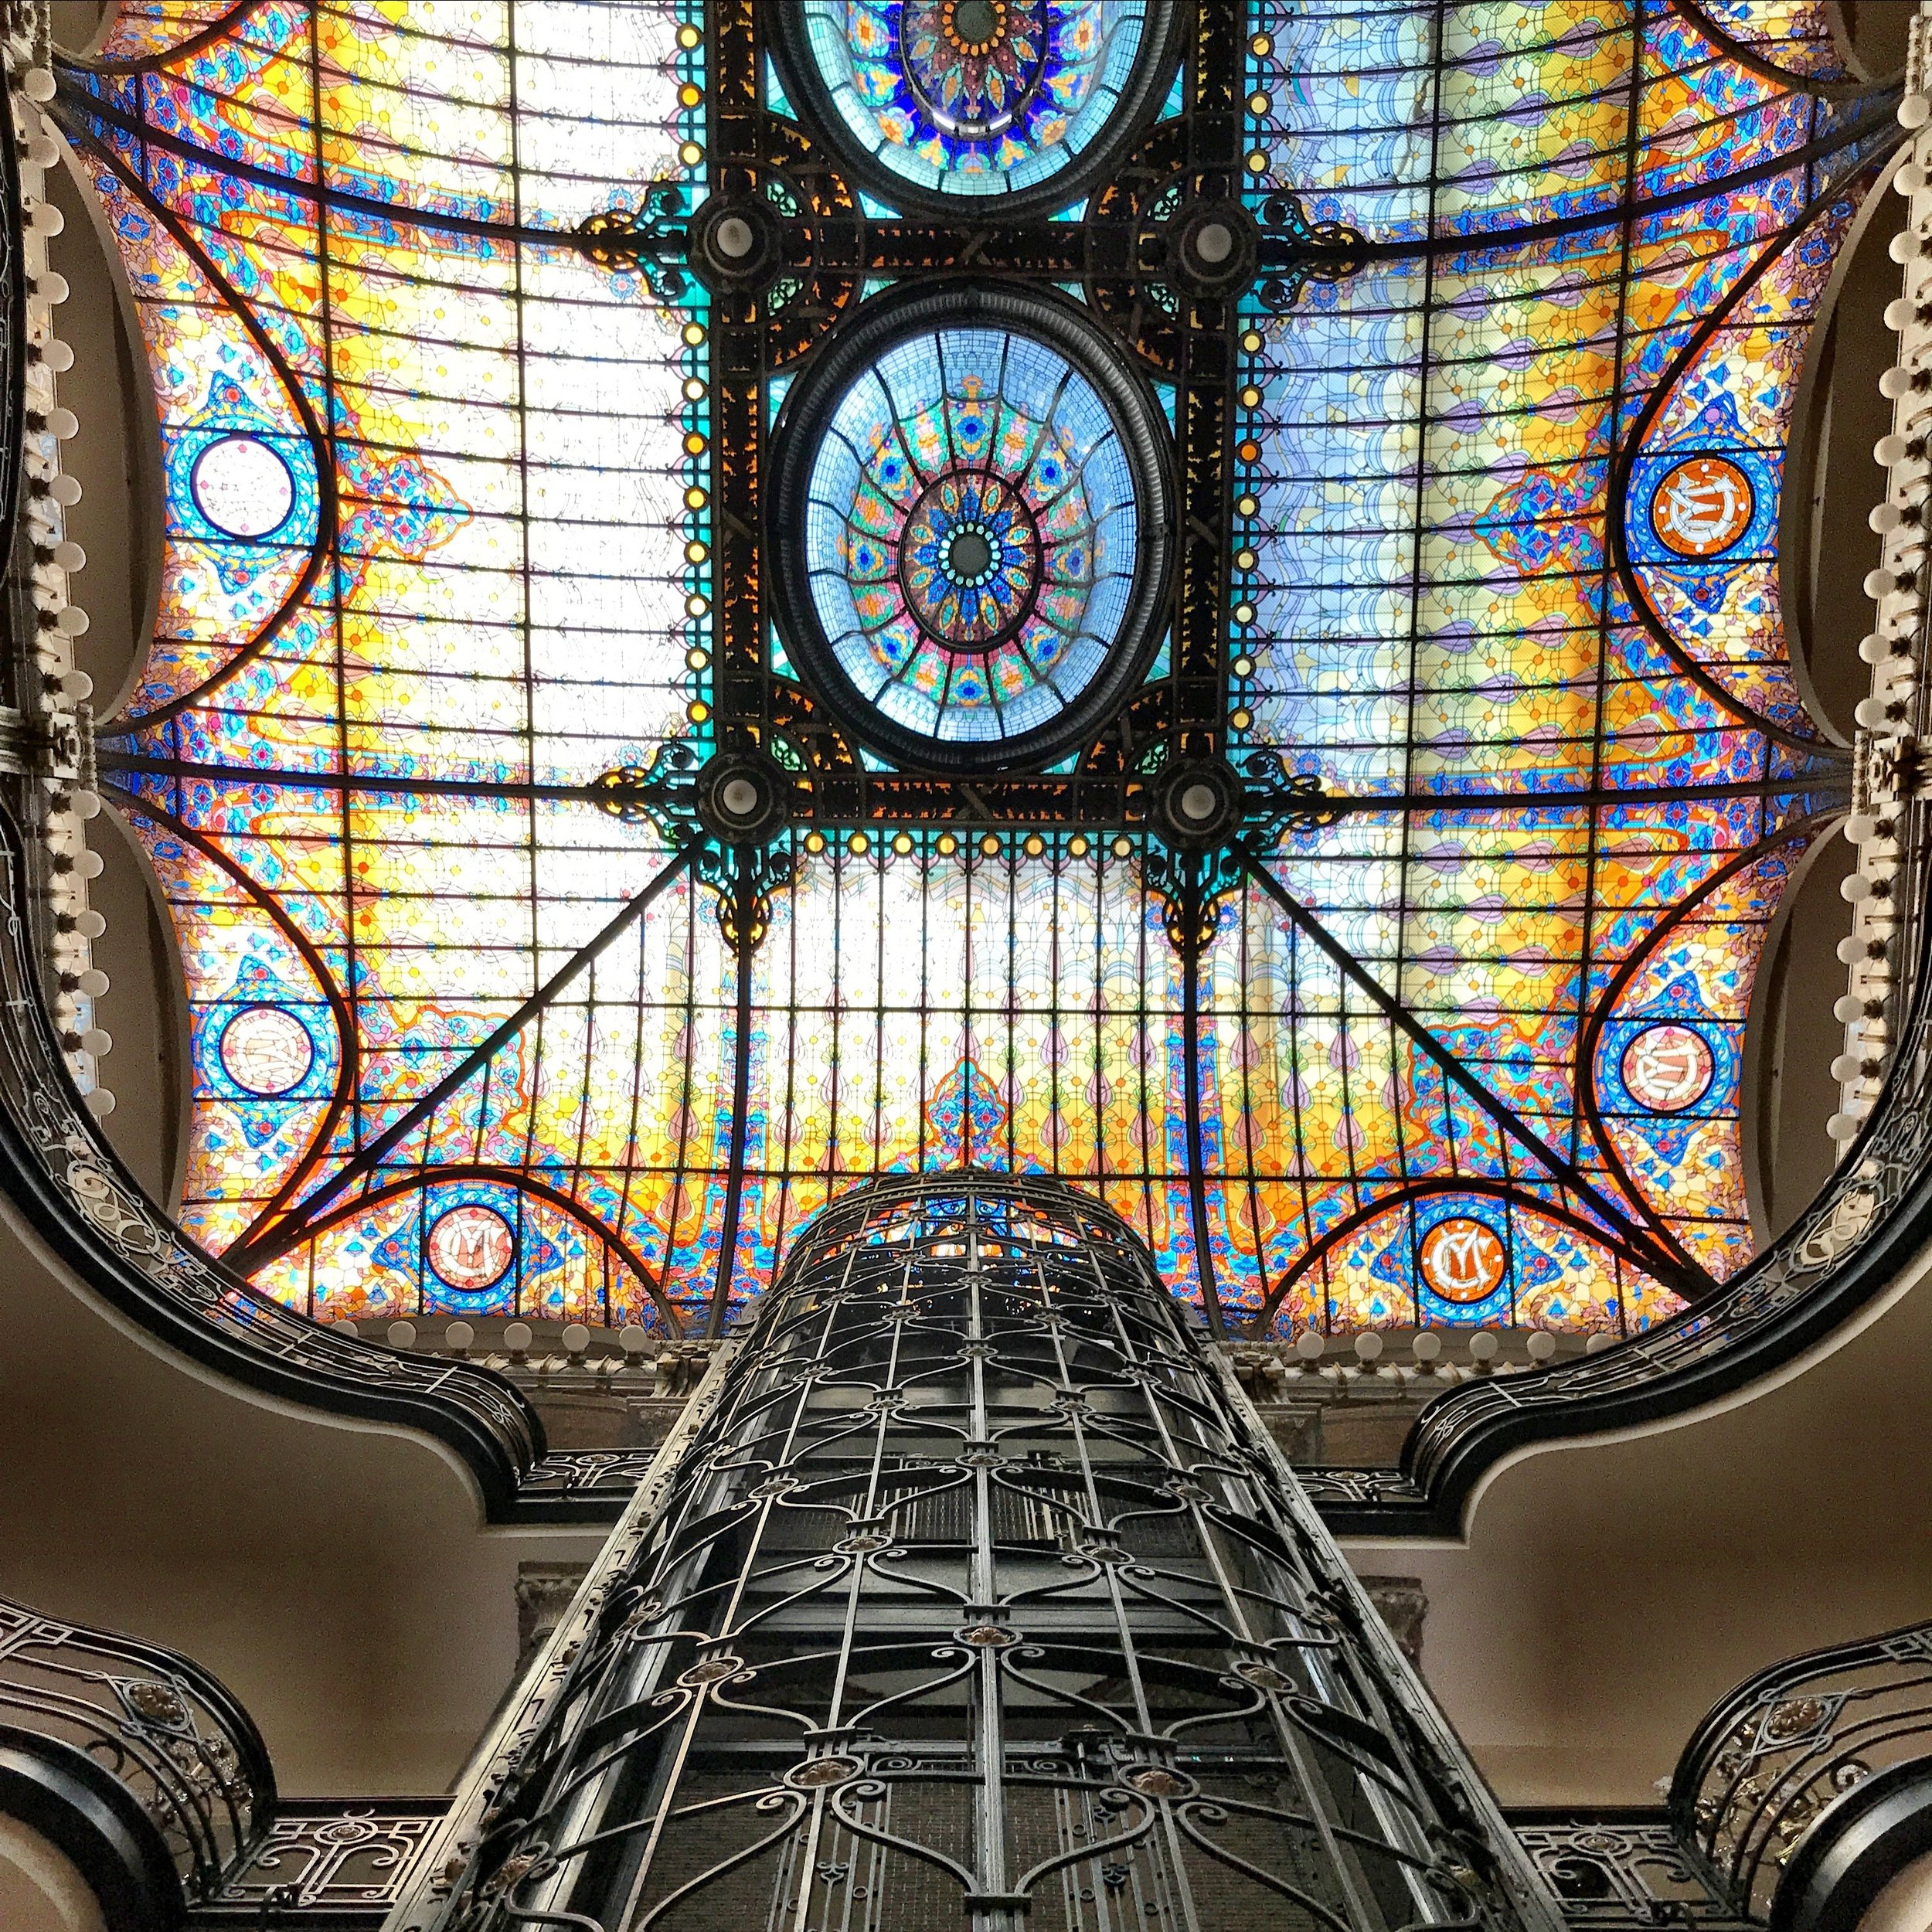 Pop into the lobby of the Gran Hotel to marvel at the stained glass ceiling and ironwork